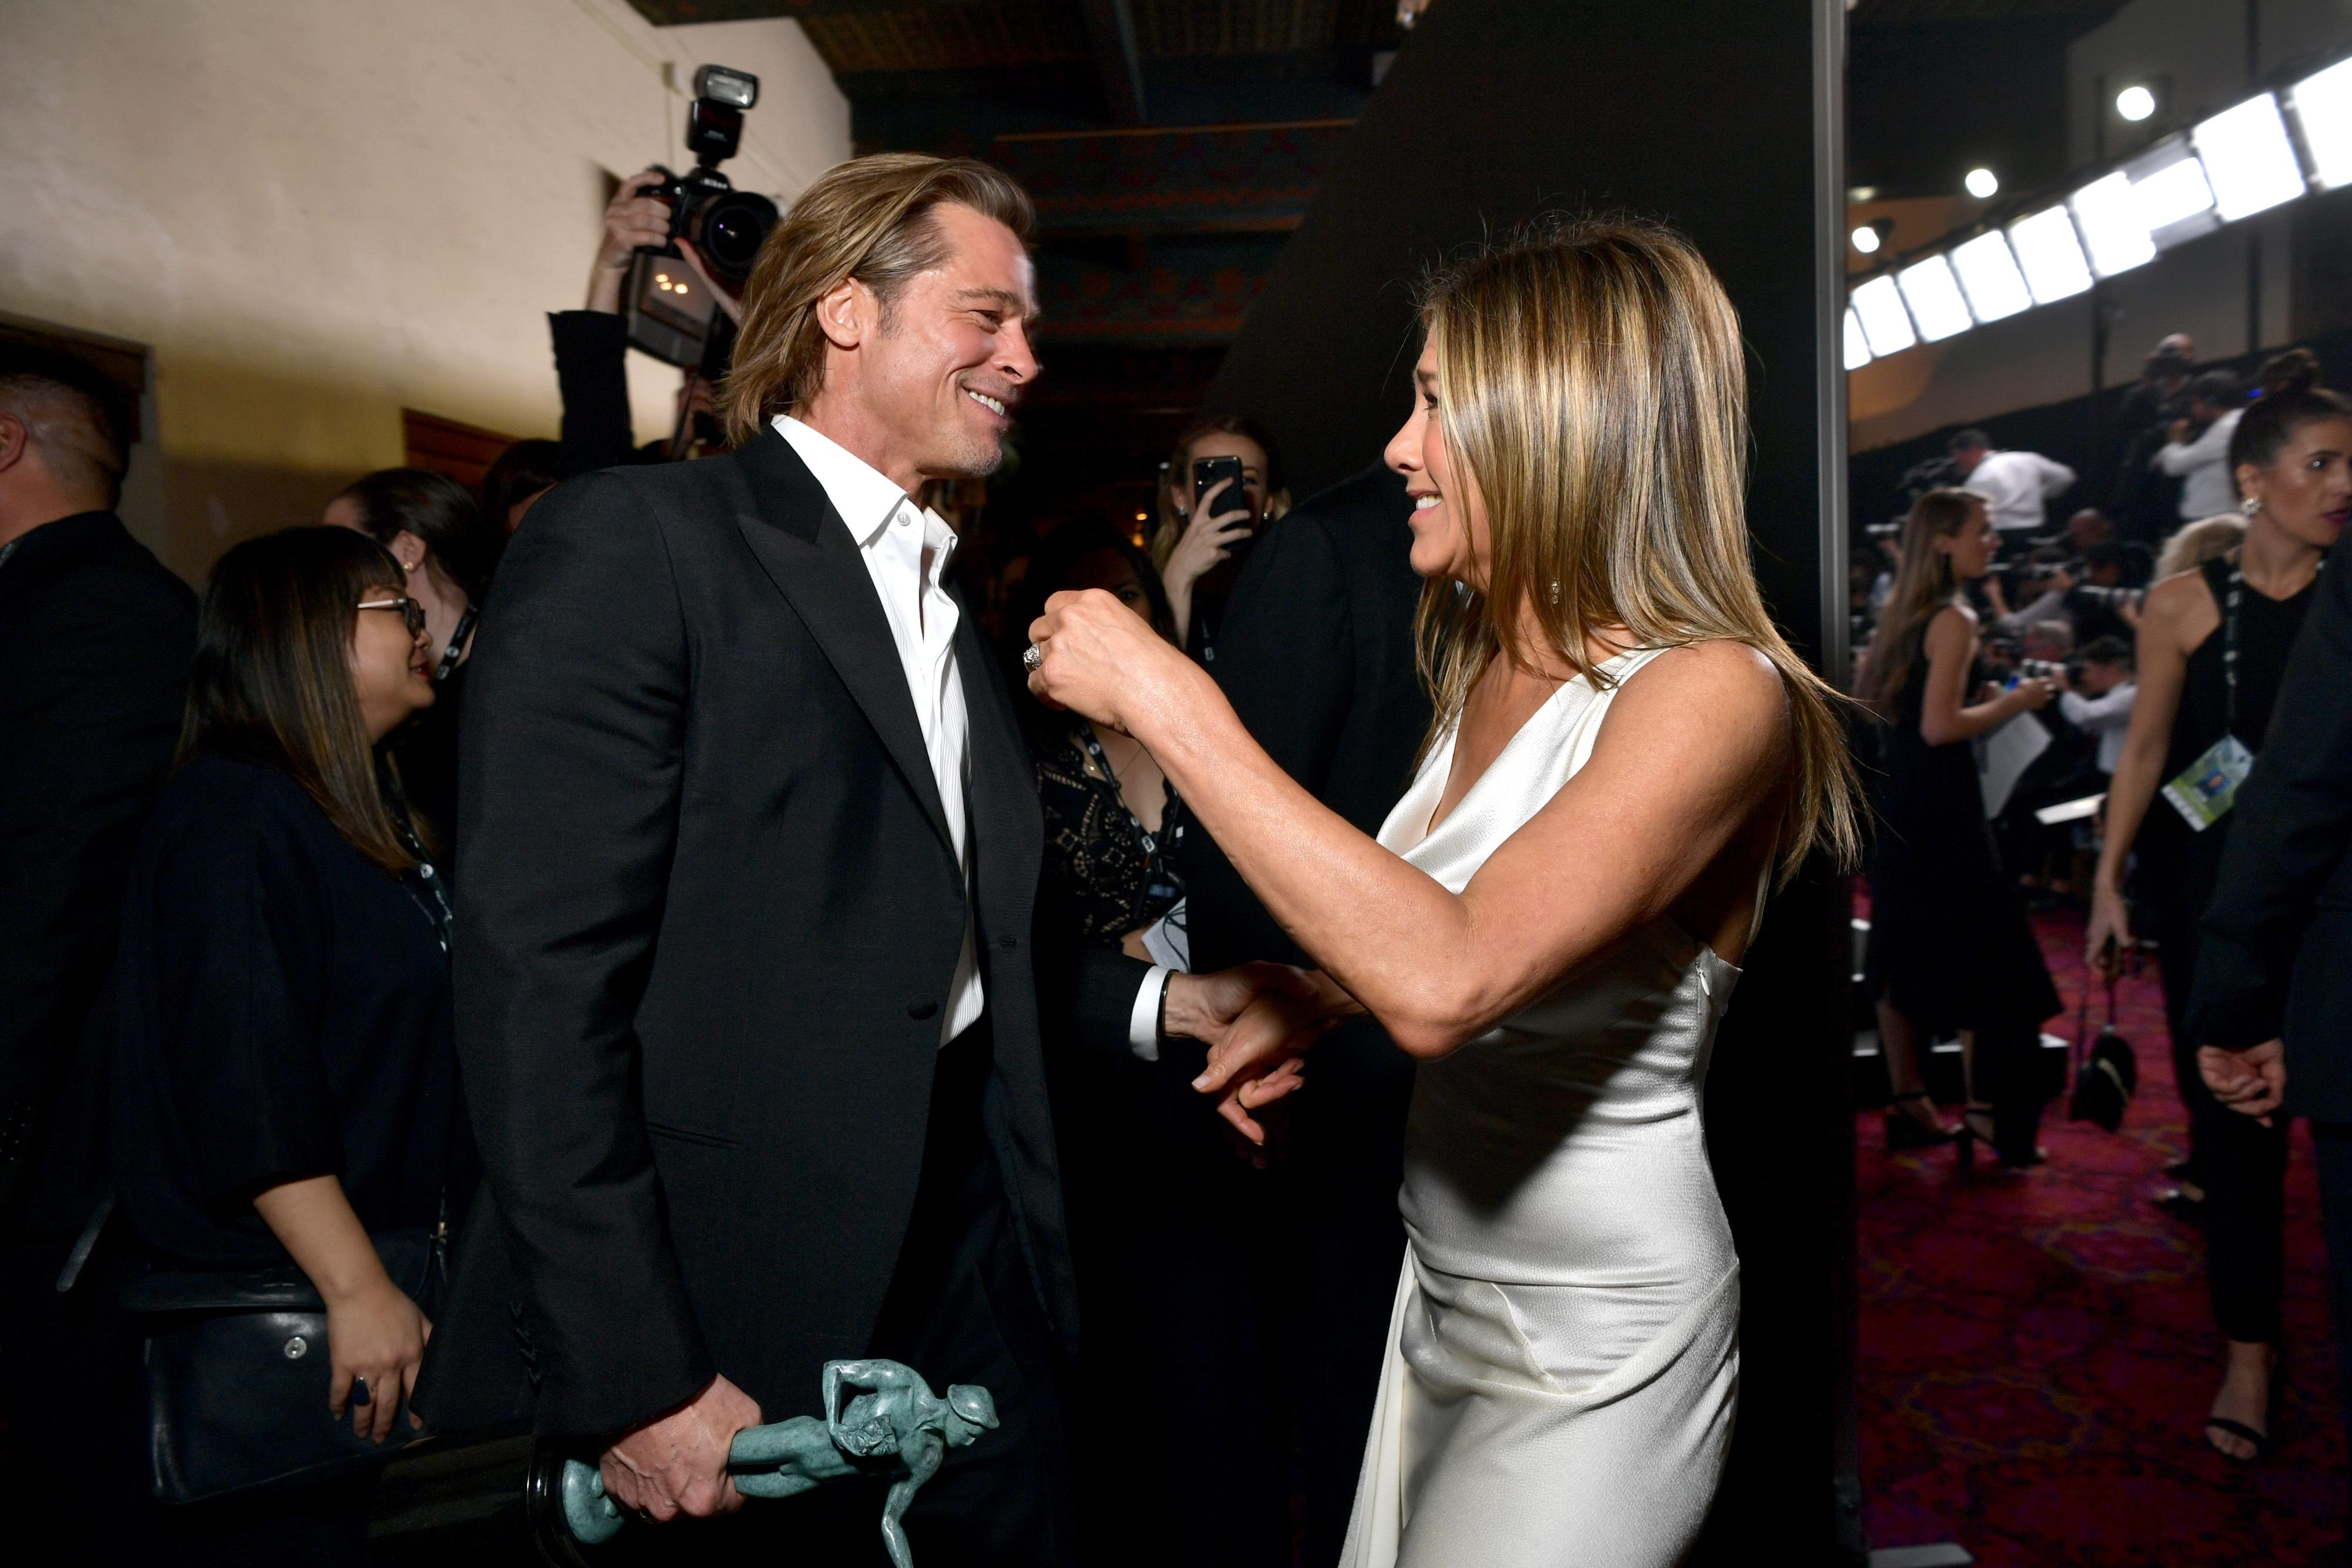 Brad Pitt and Jennifer Aniston at the 26th Annual Screen Actors Guild Awards on January 19, 2020 / Getty Images